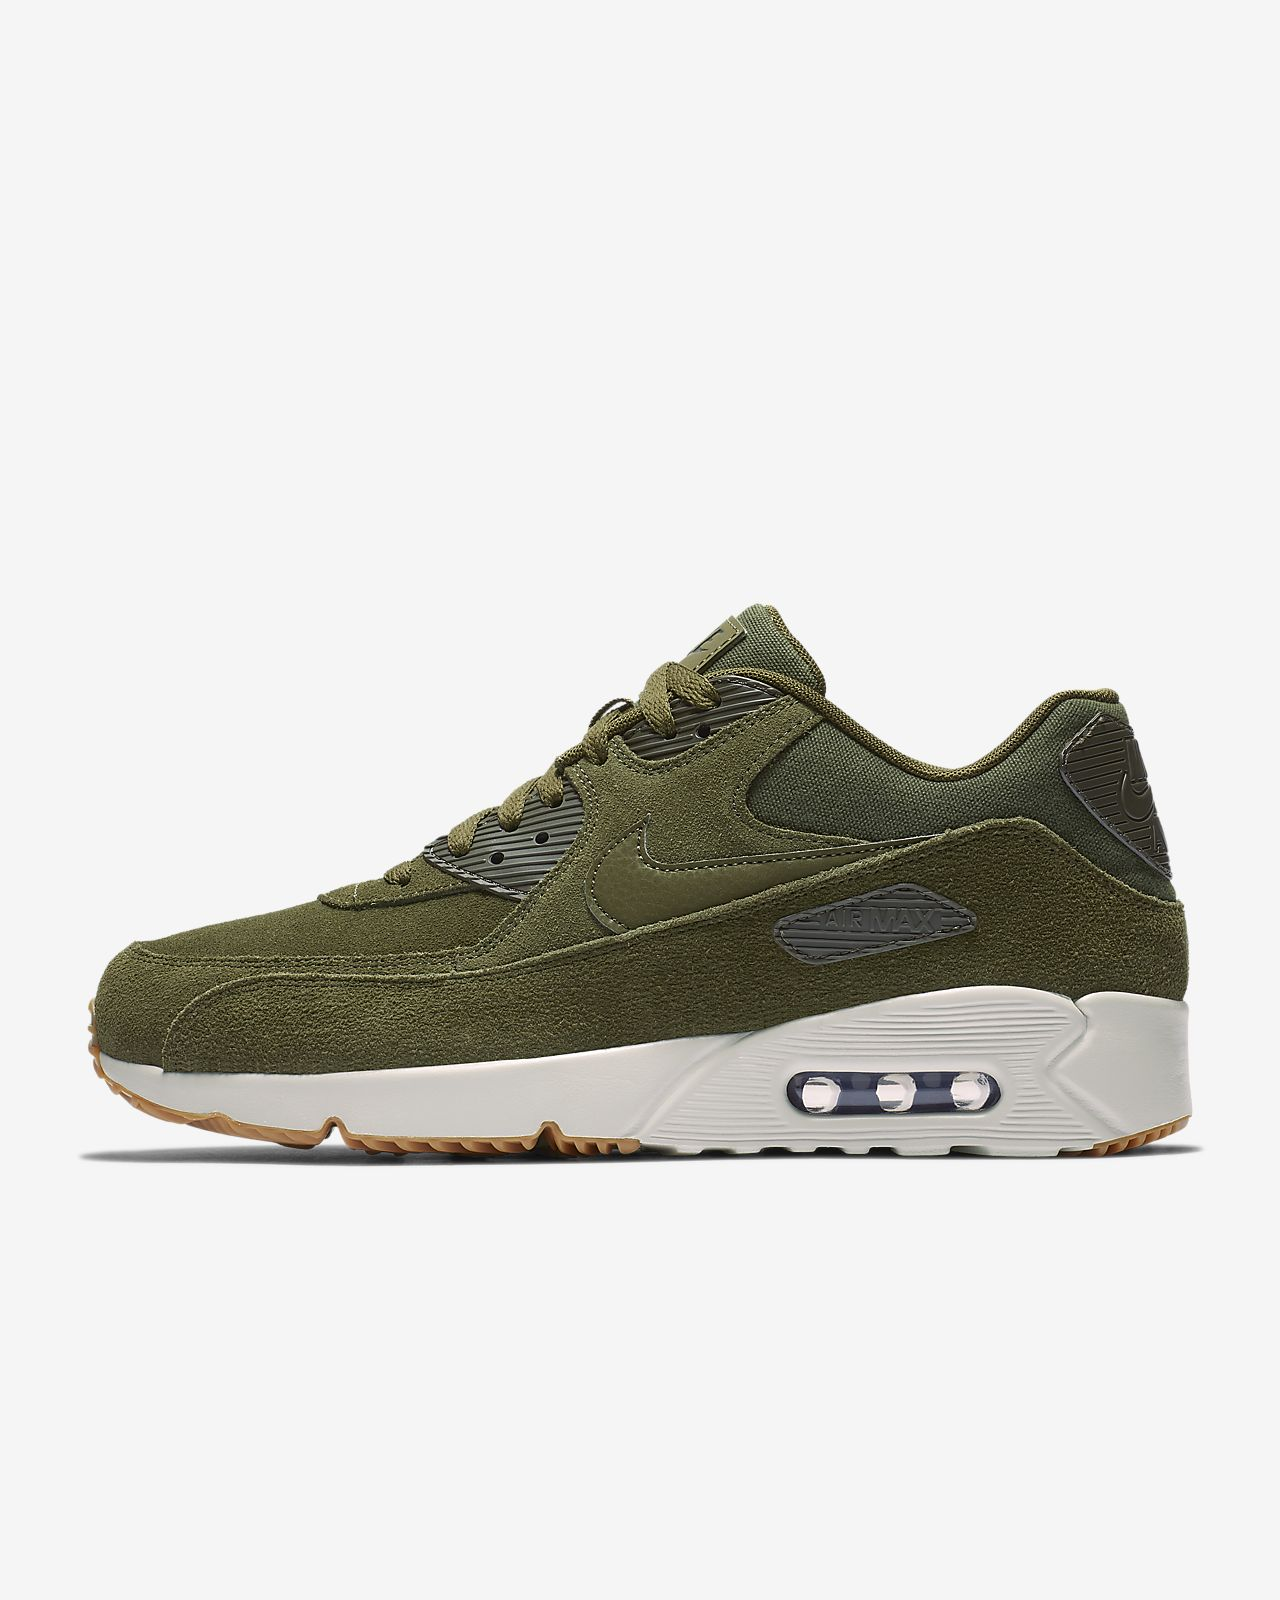 b9ba4b9b62f4a1 Nike Air Max 90 Ultra 2.0 Men s Shoe. Nike.com